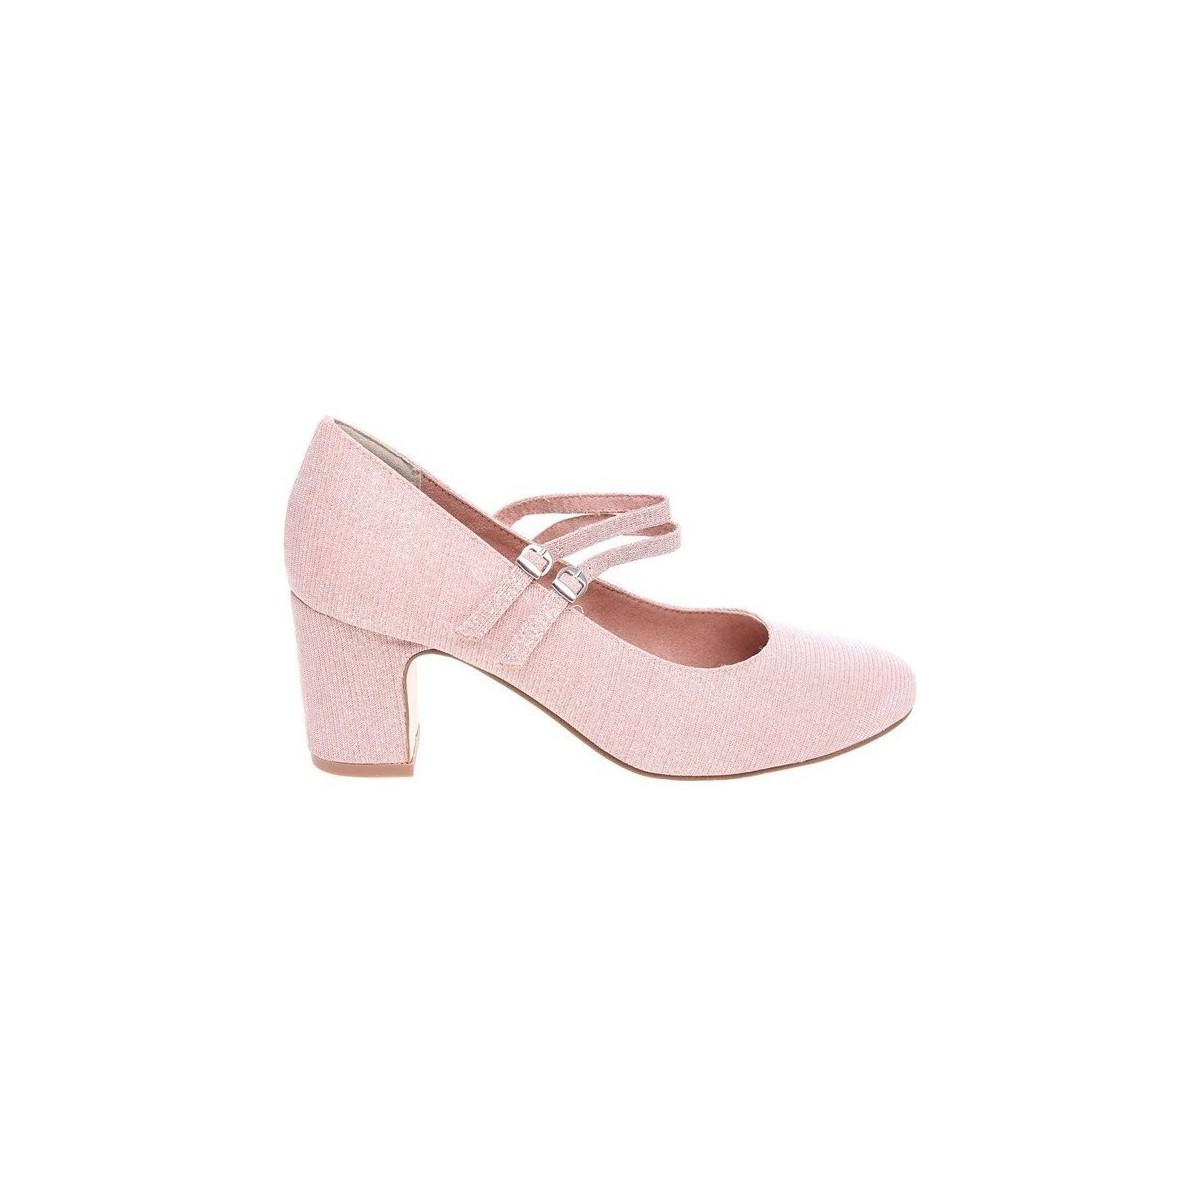 Tamaris. Pink 12440720 Rose Glam 112440720 552 Women's Court Shoes In  Multicolour